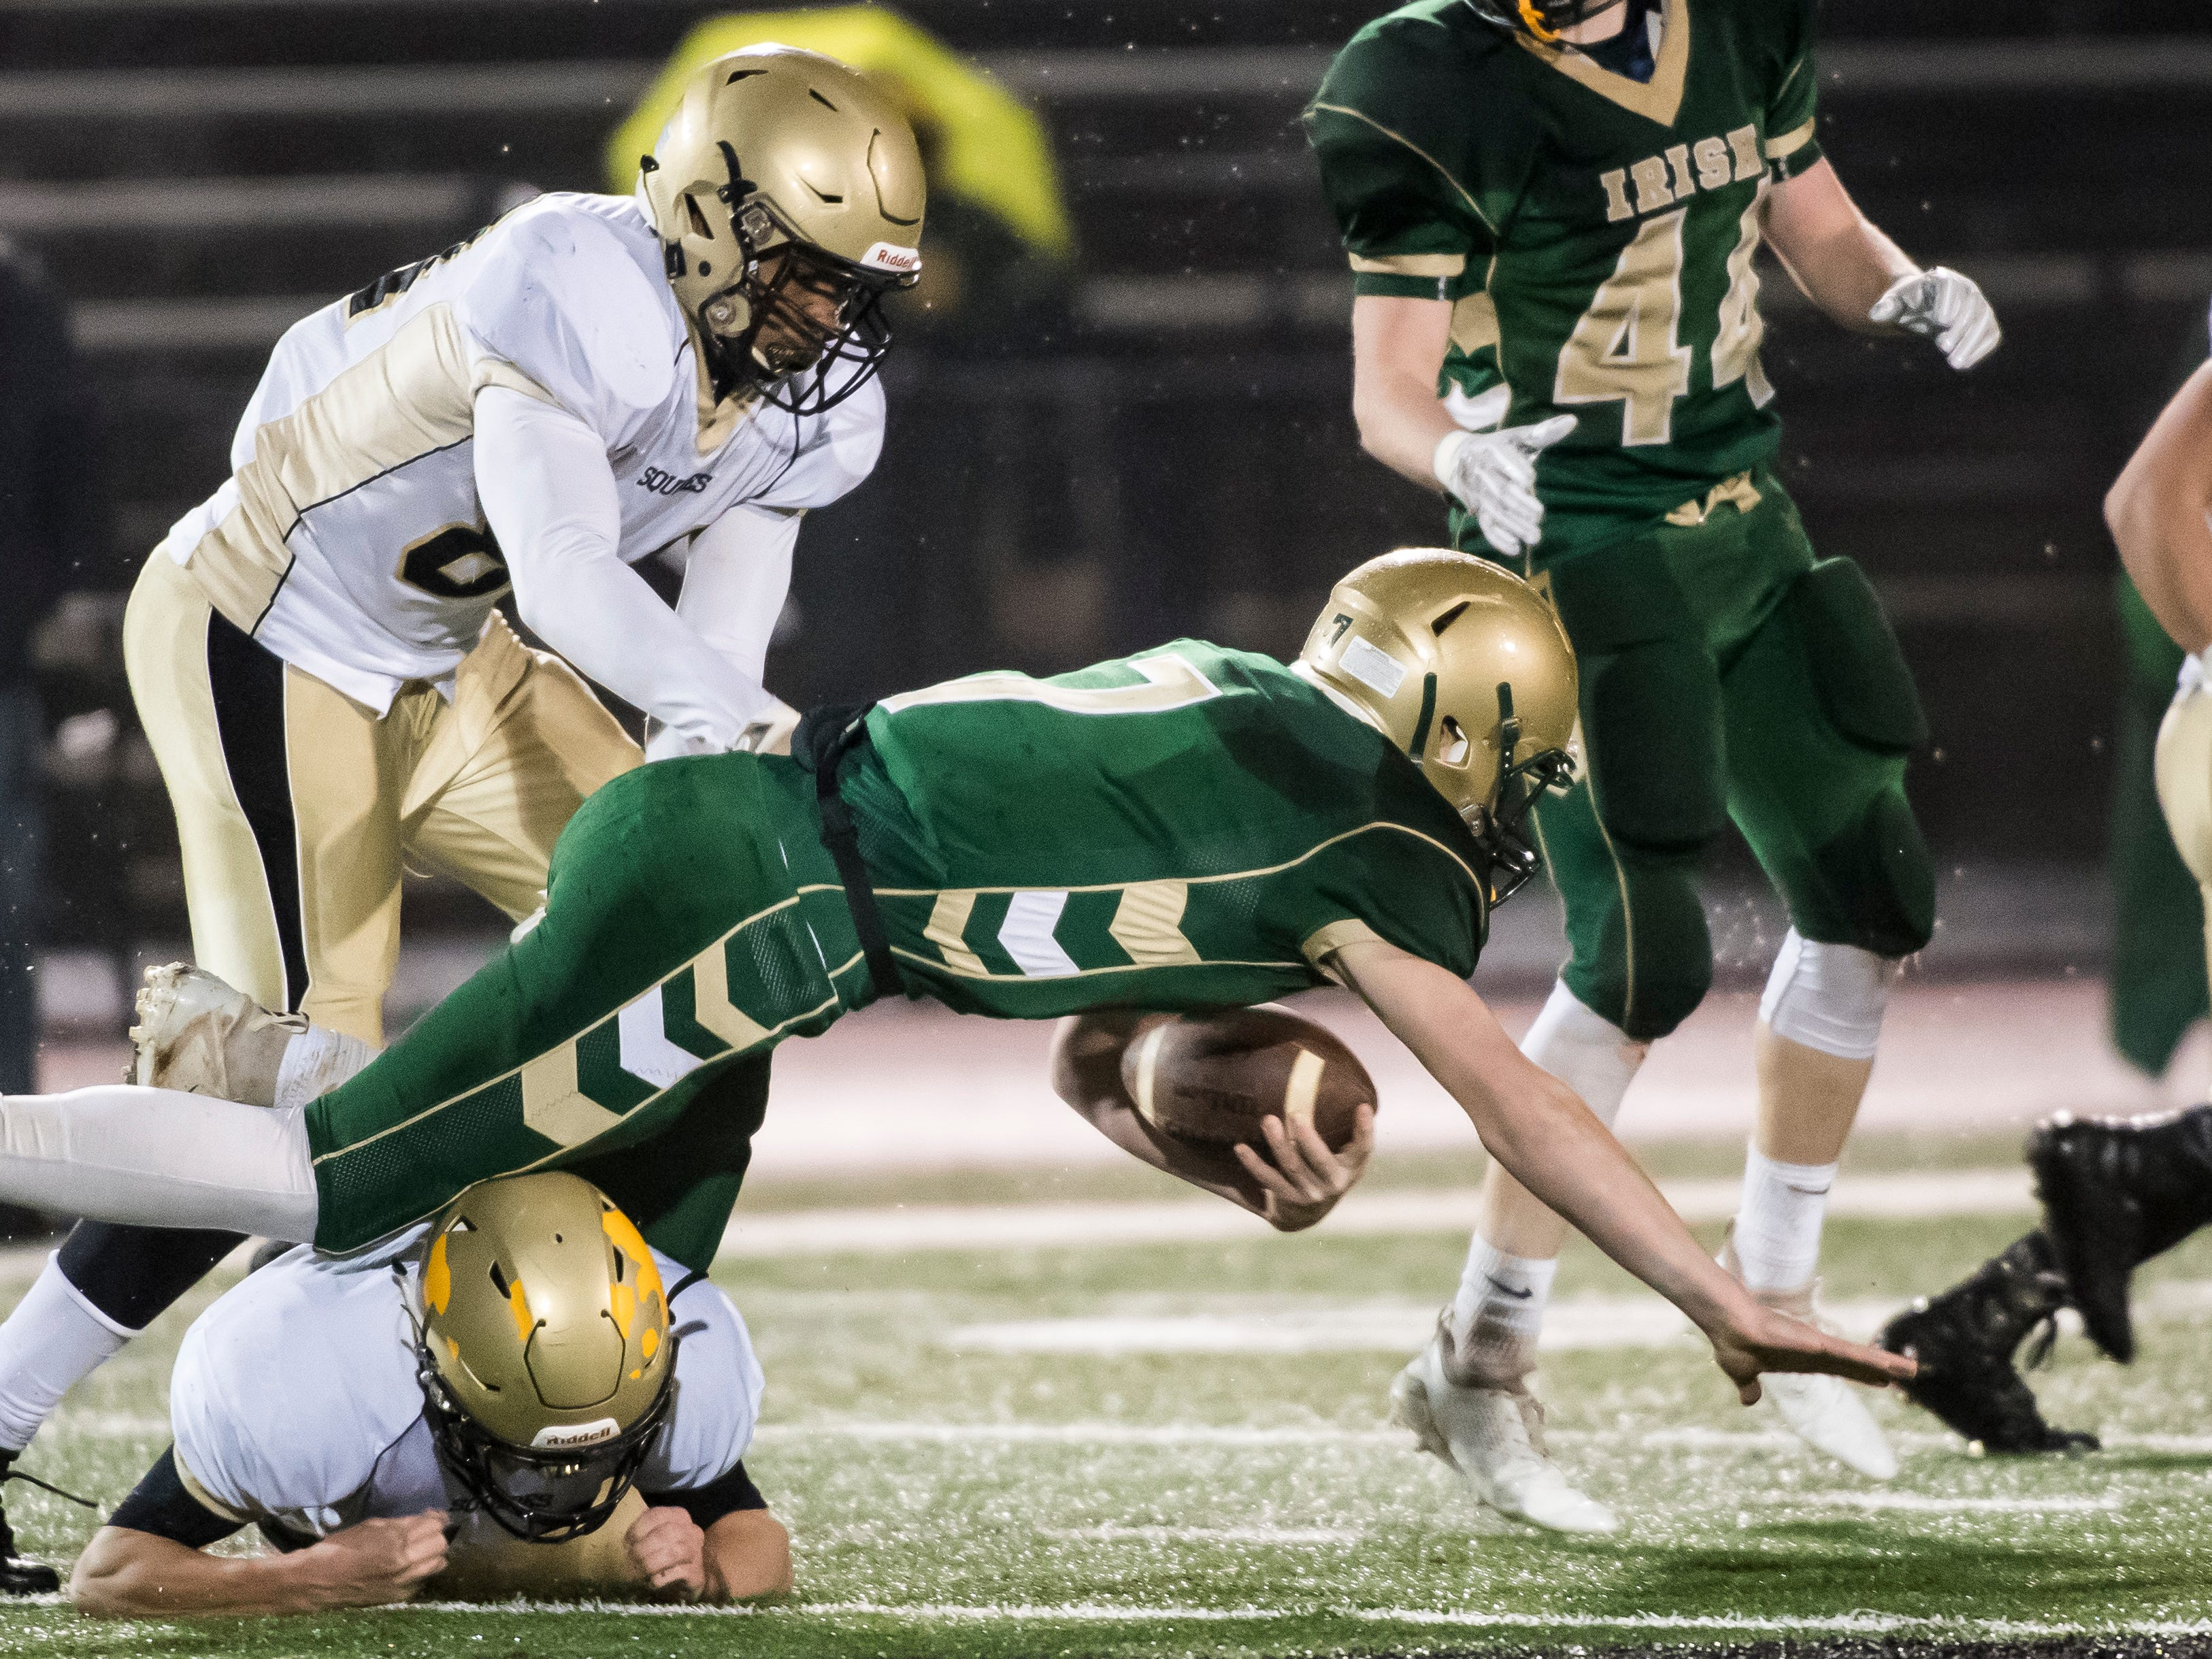 York Catholic's Mitchell Galentine is tripped up by a Delone Catholic defender during the PIAA District 3 Class 2A championship game at South Western High School on Friday, November 9, 2018. The Squires fell 28-21 in overtime.